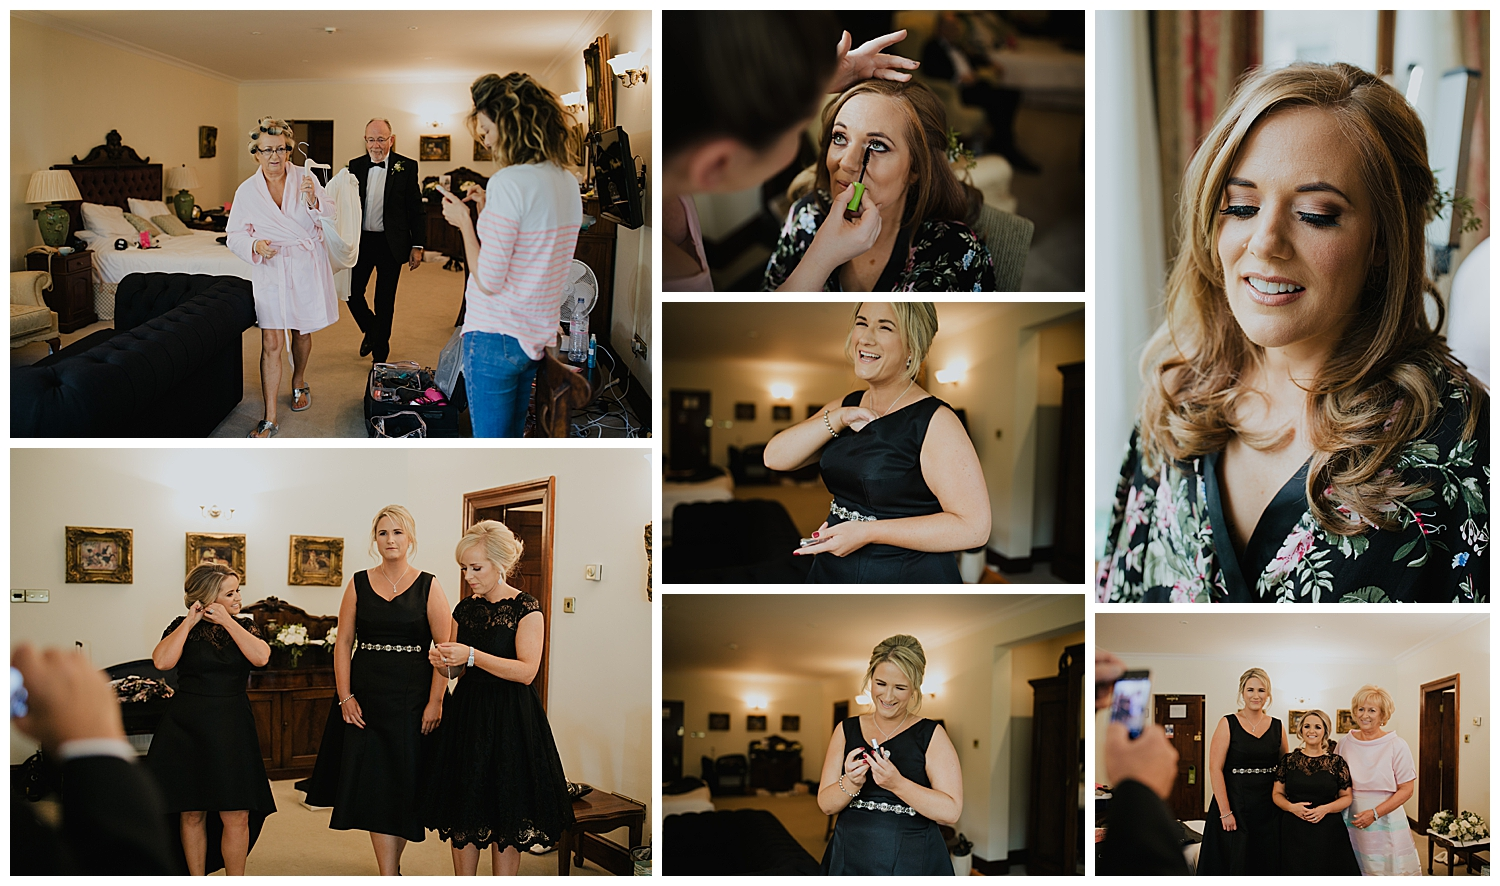 a&c_tinakilly_black_tie_wedding_photographer_livia_figueiredo_37.jpg